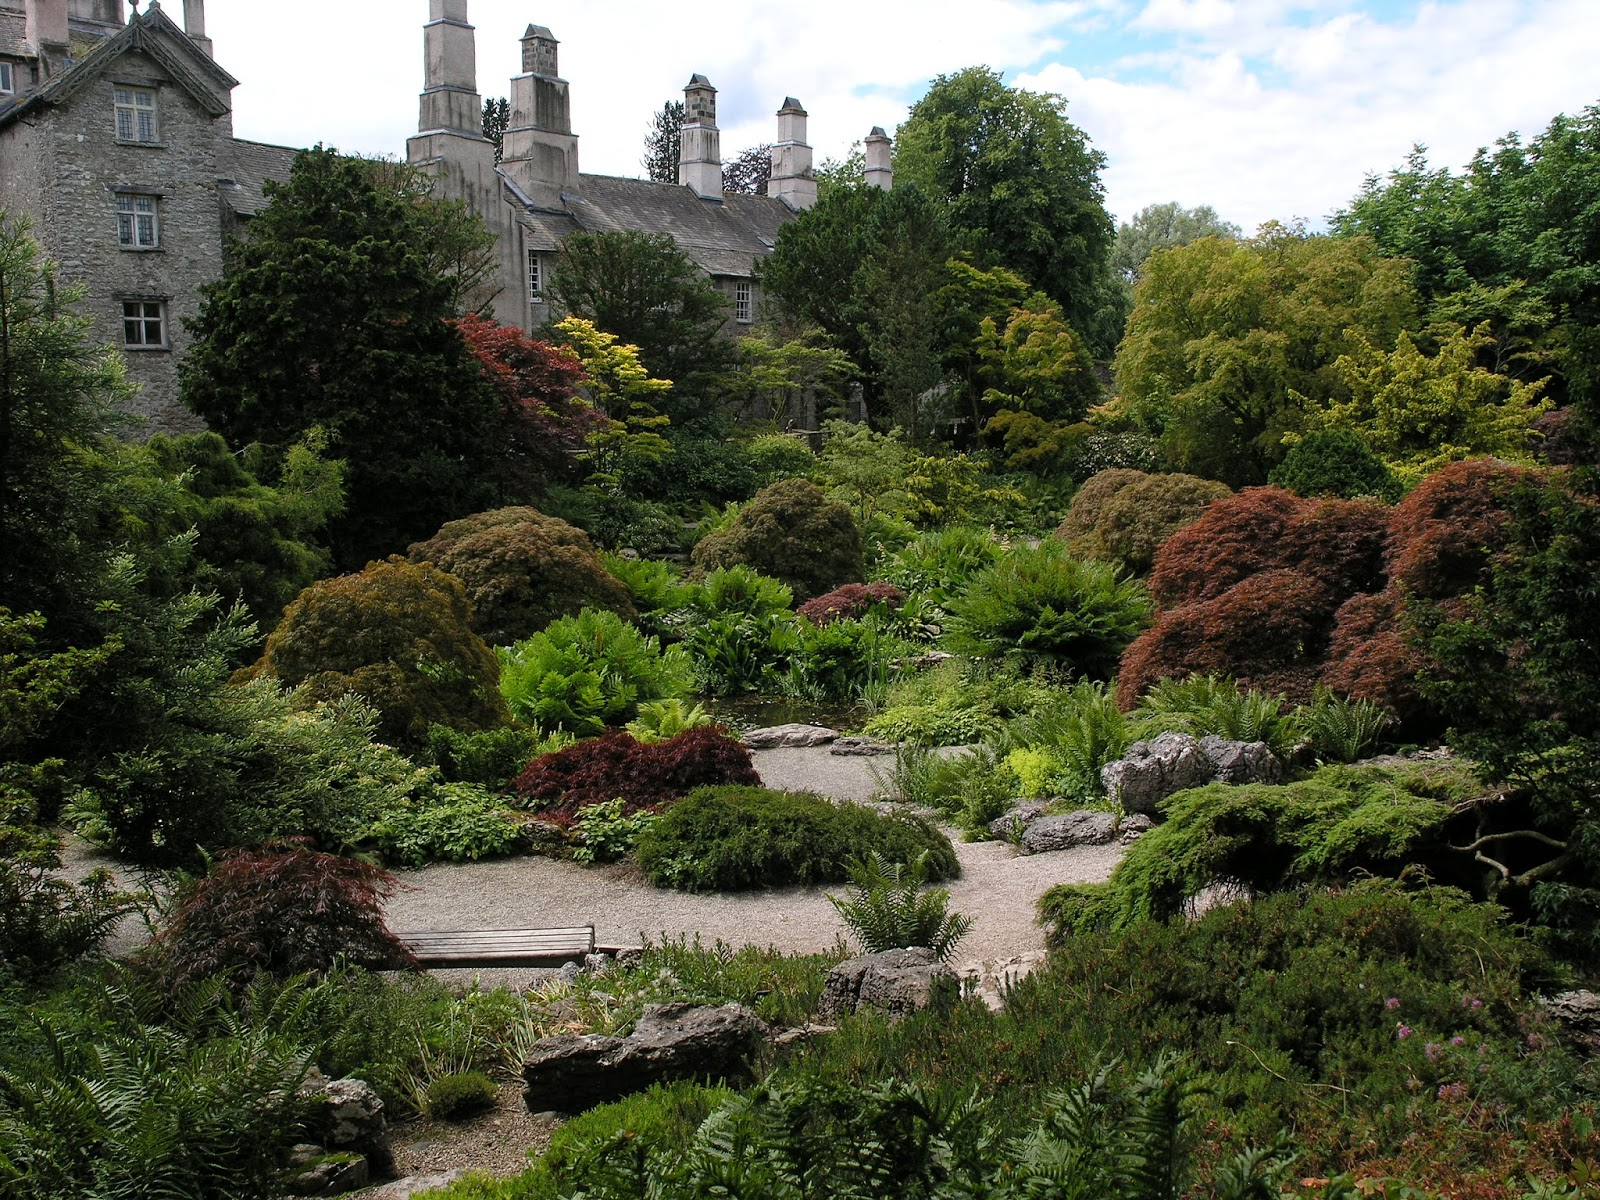 David Keegans Garden Design Blog A Visit To Sizergh Castle In The Lake District Kendal Cumbria